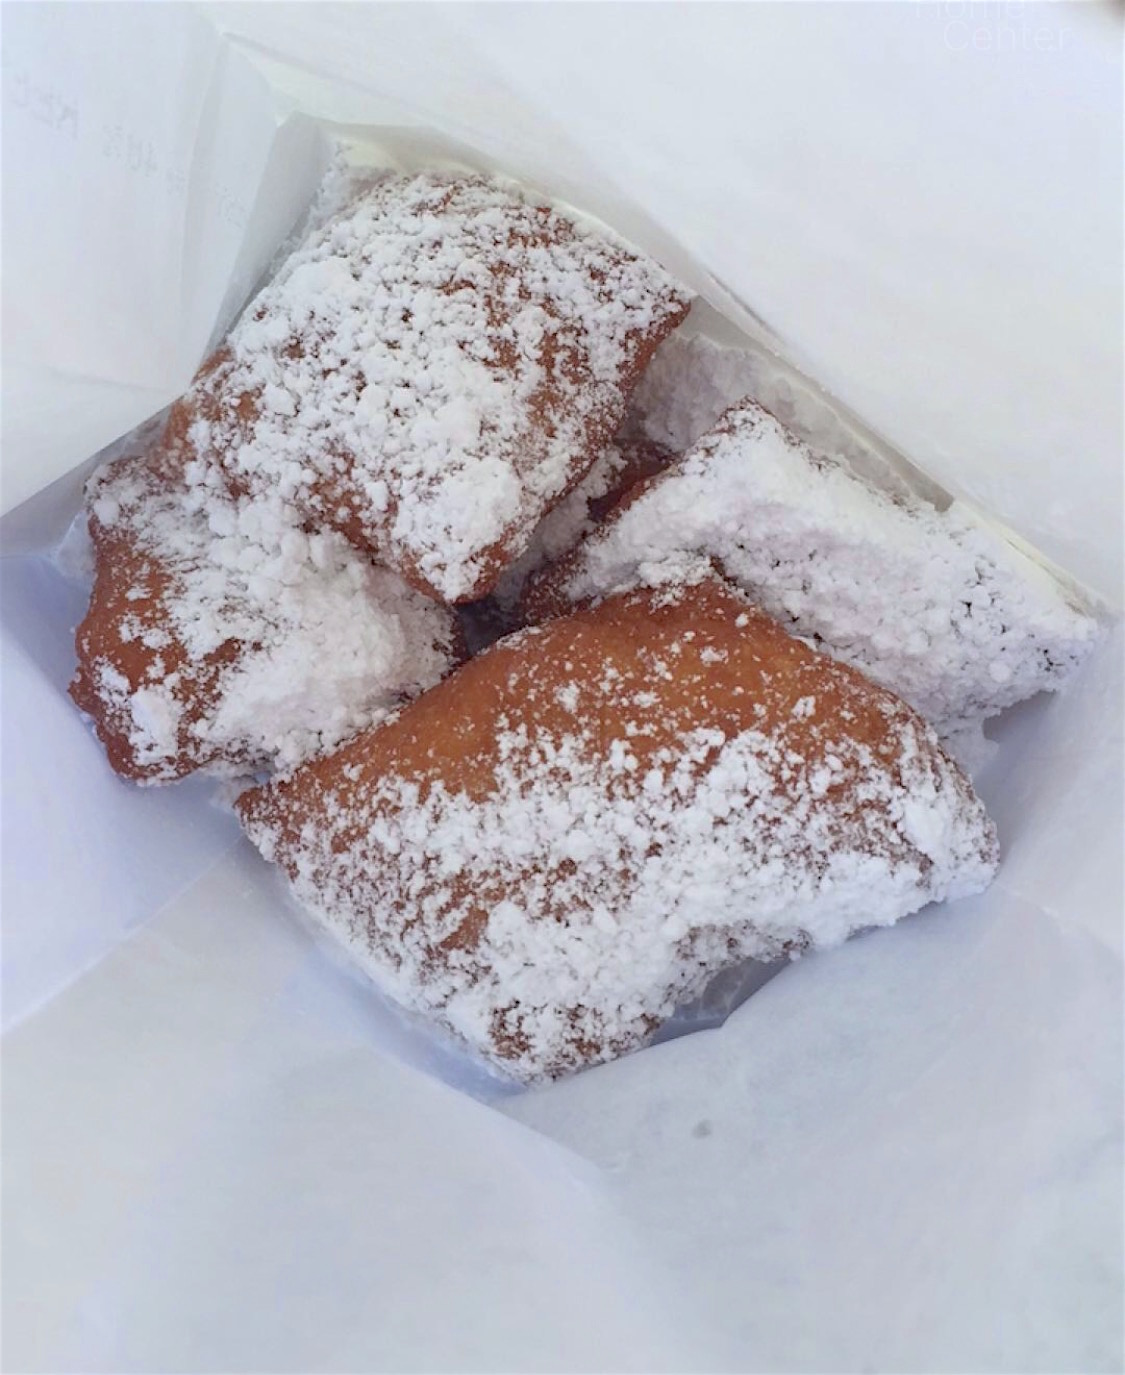 Small (4) Beignets $5.49